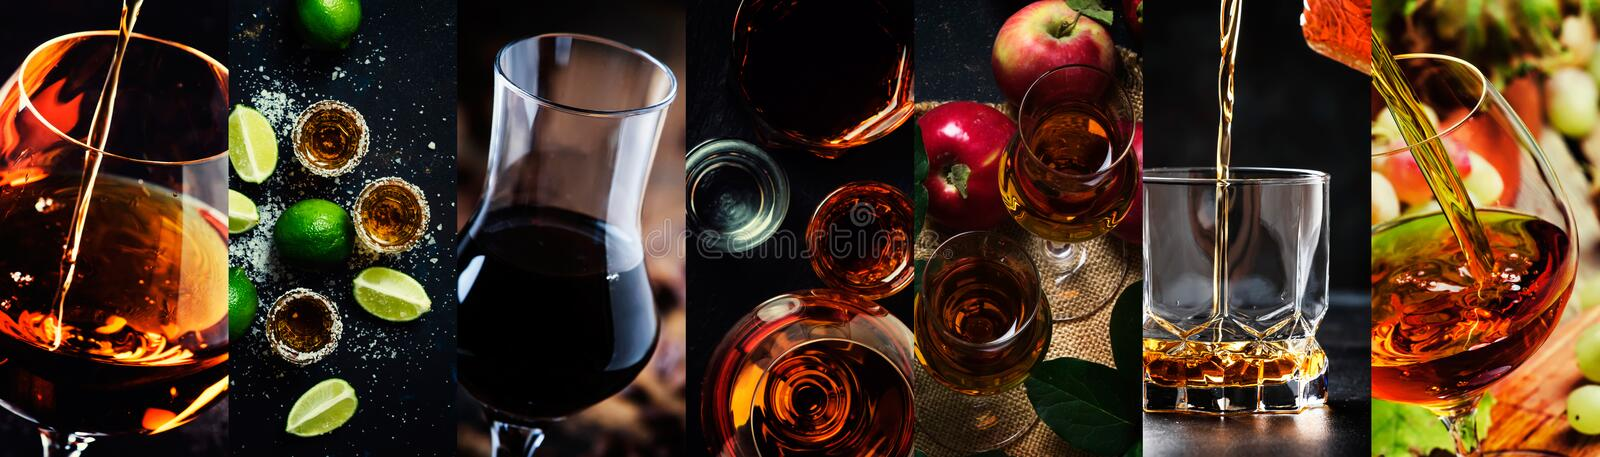 Photo collage, strong alcoholic drinks: cognac, vinsky and brandy, tequila and vodka, grappa, liquor. Close-up royalty free stock photos